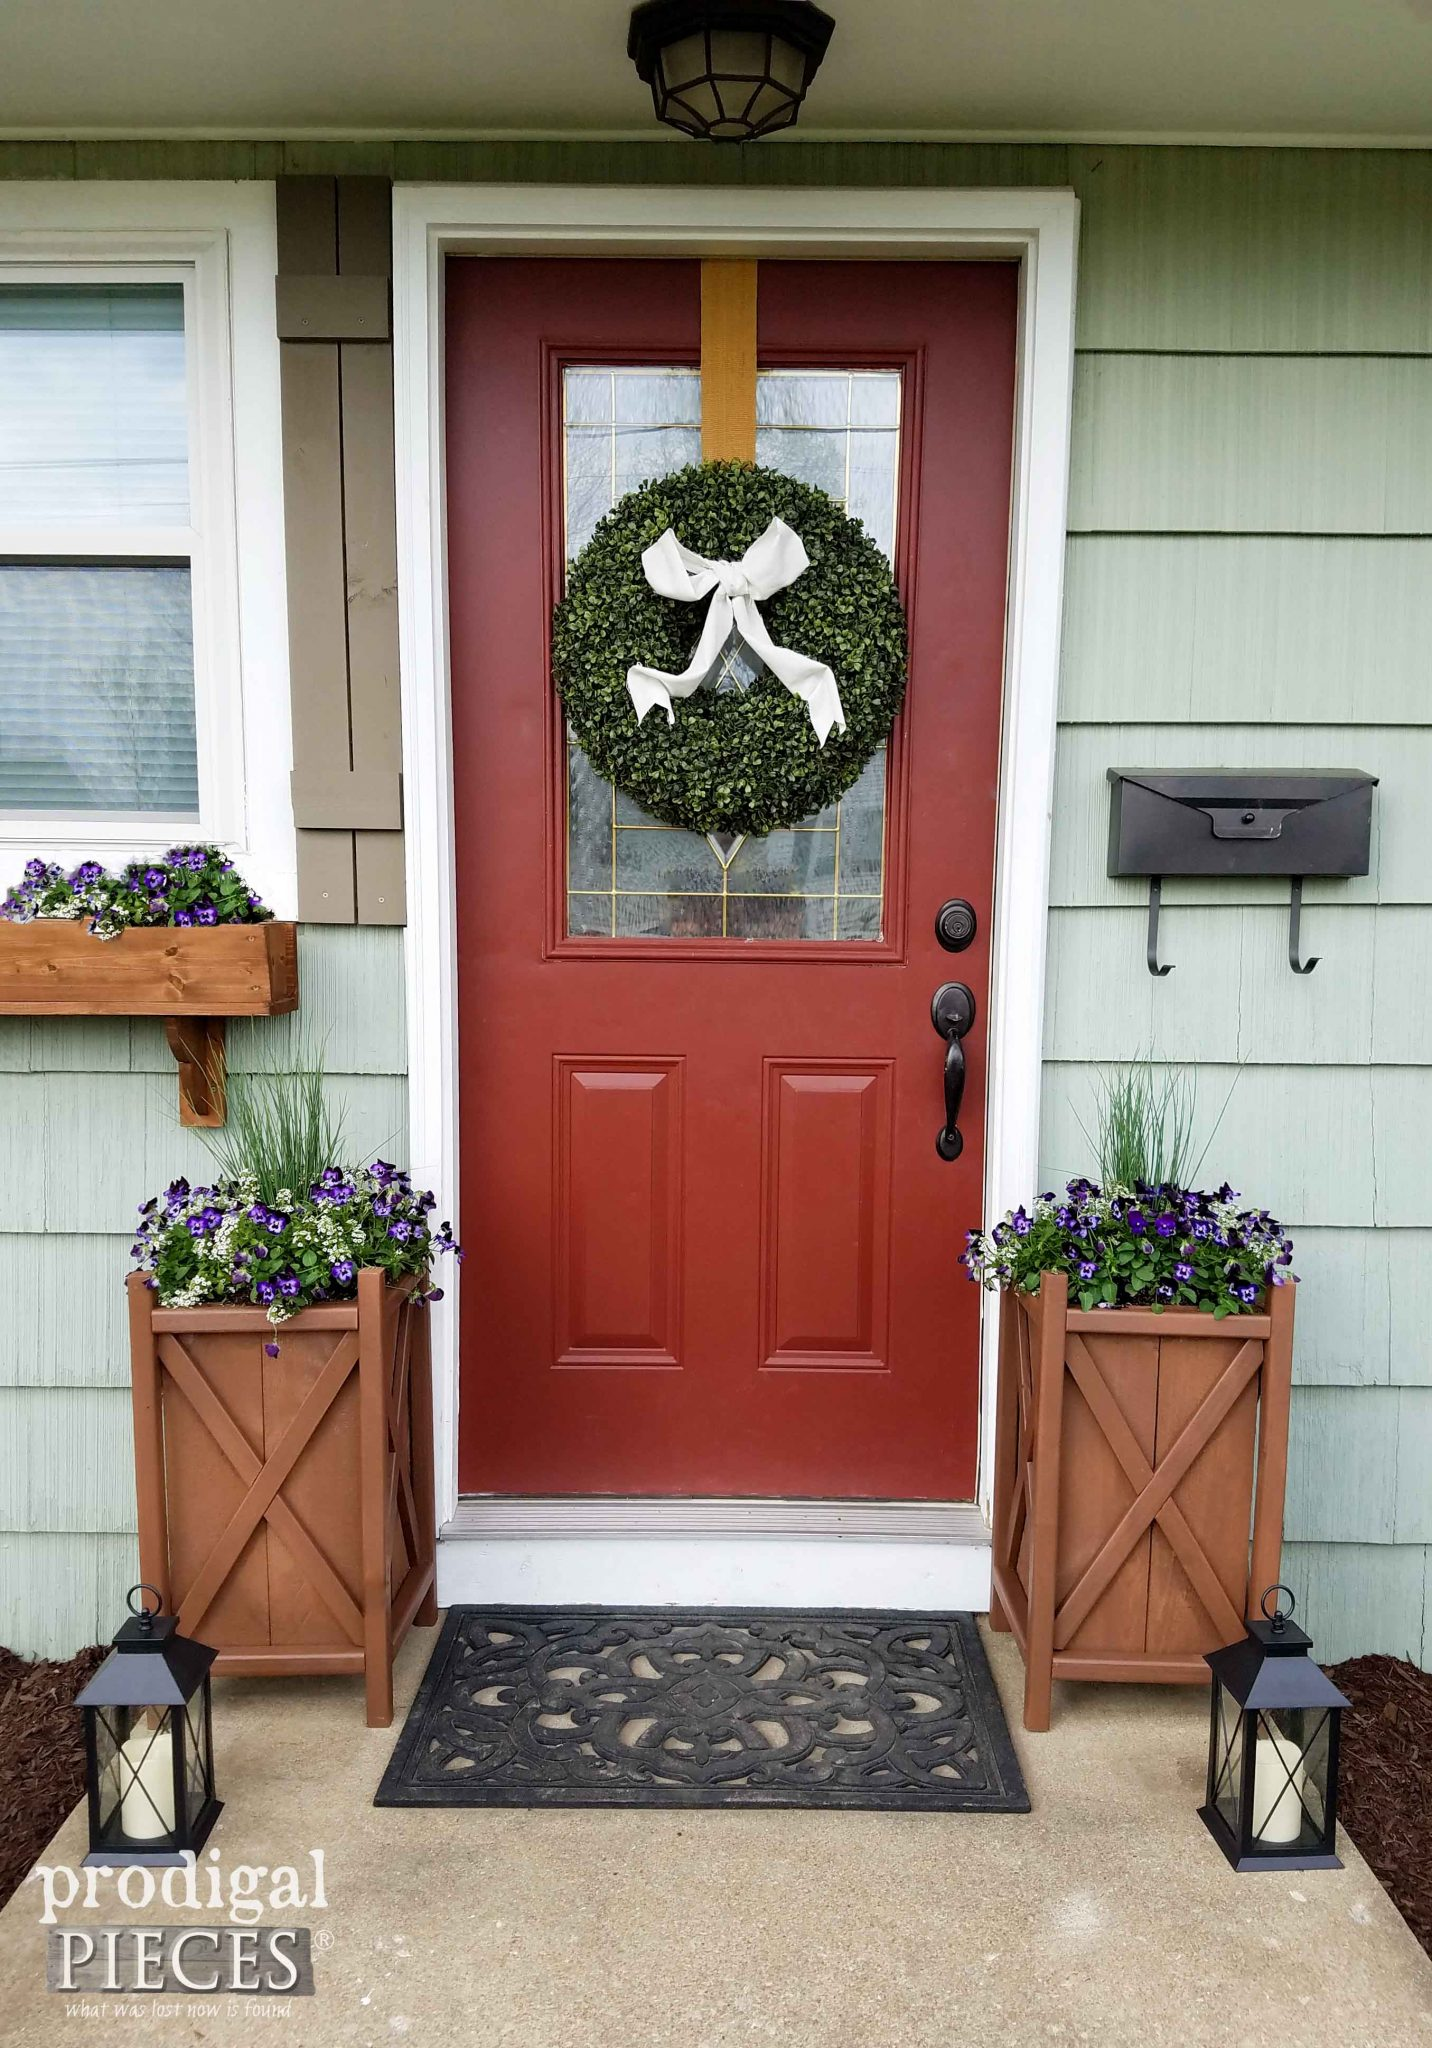 Add curb appeal to your home with this DIY planter with free build plans by Prodigal Pieces | prodigalpieces.com